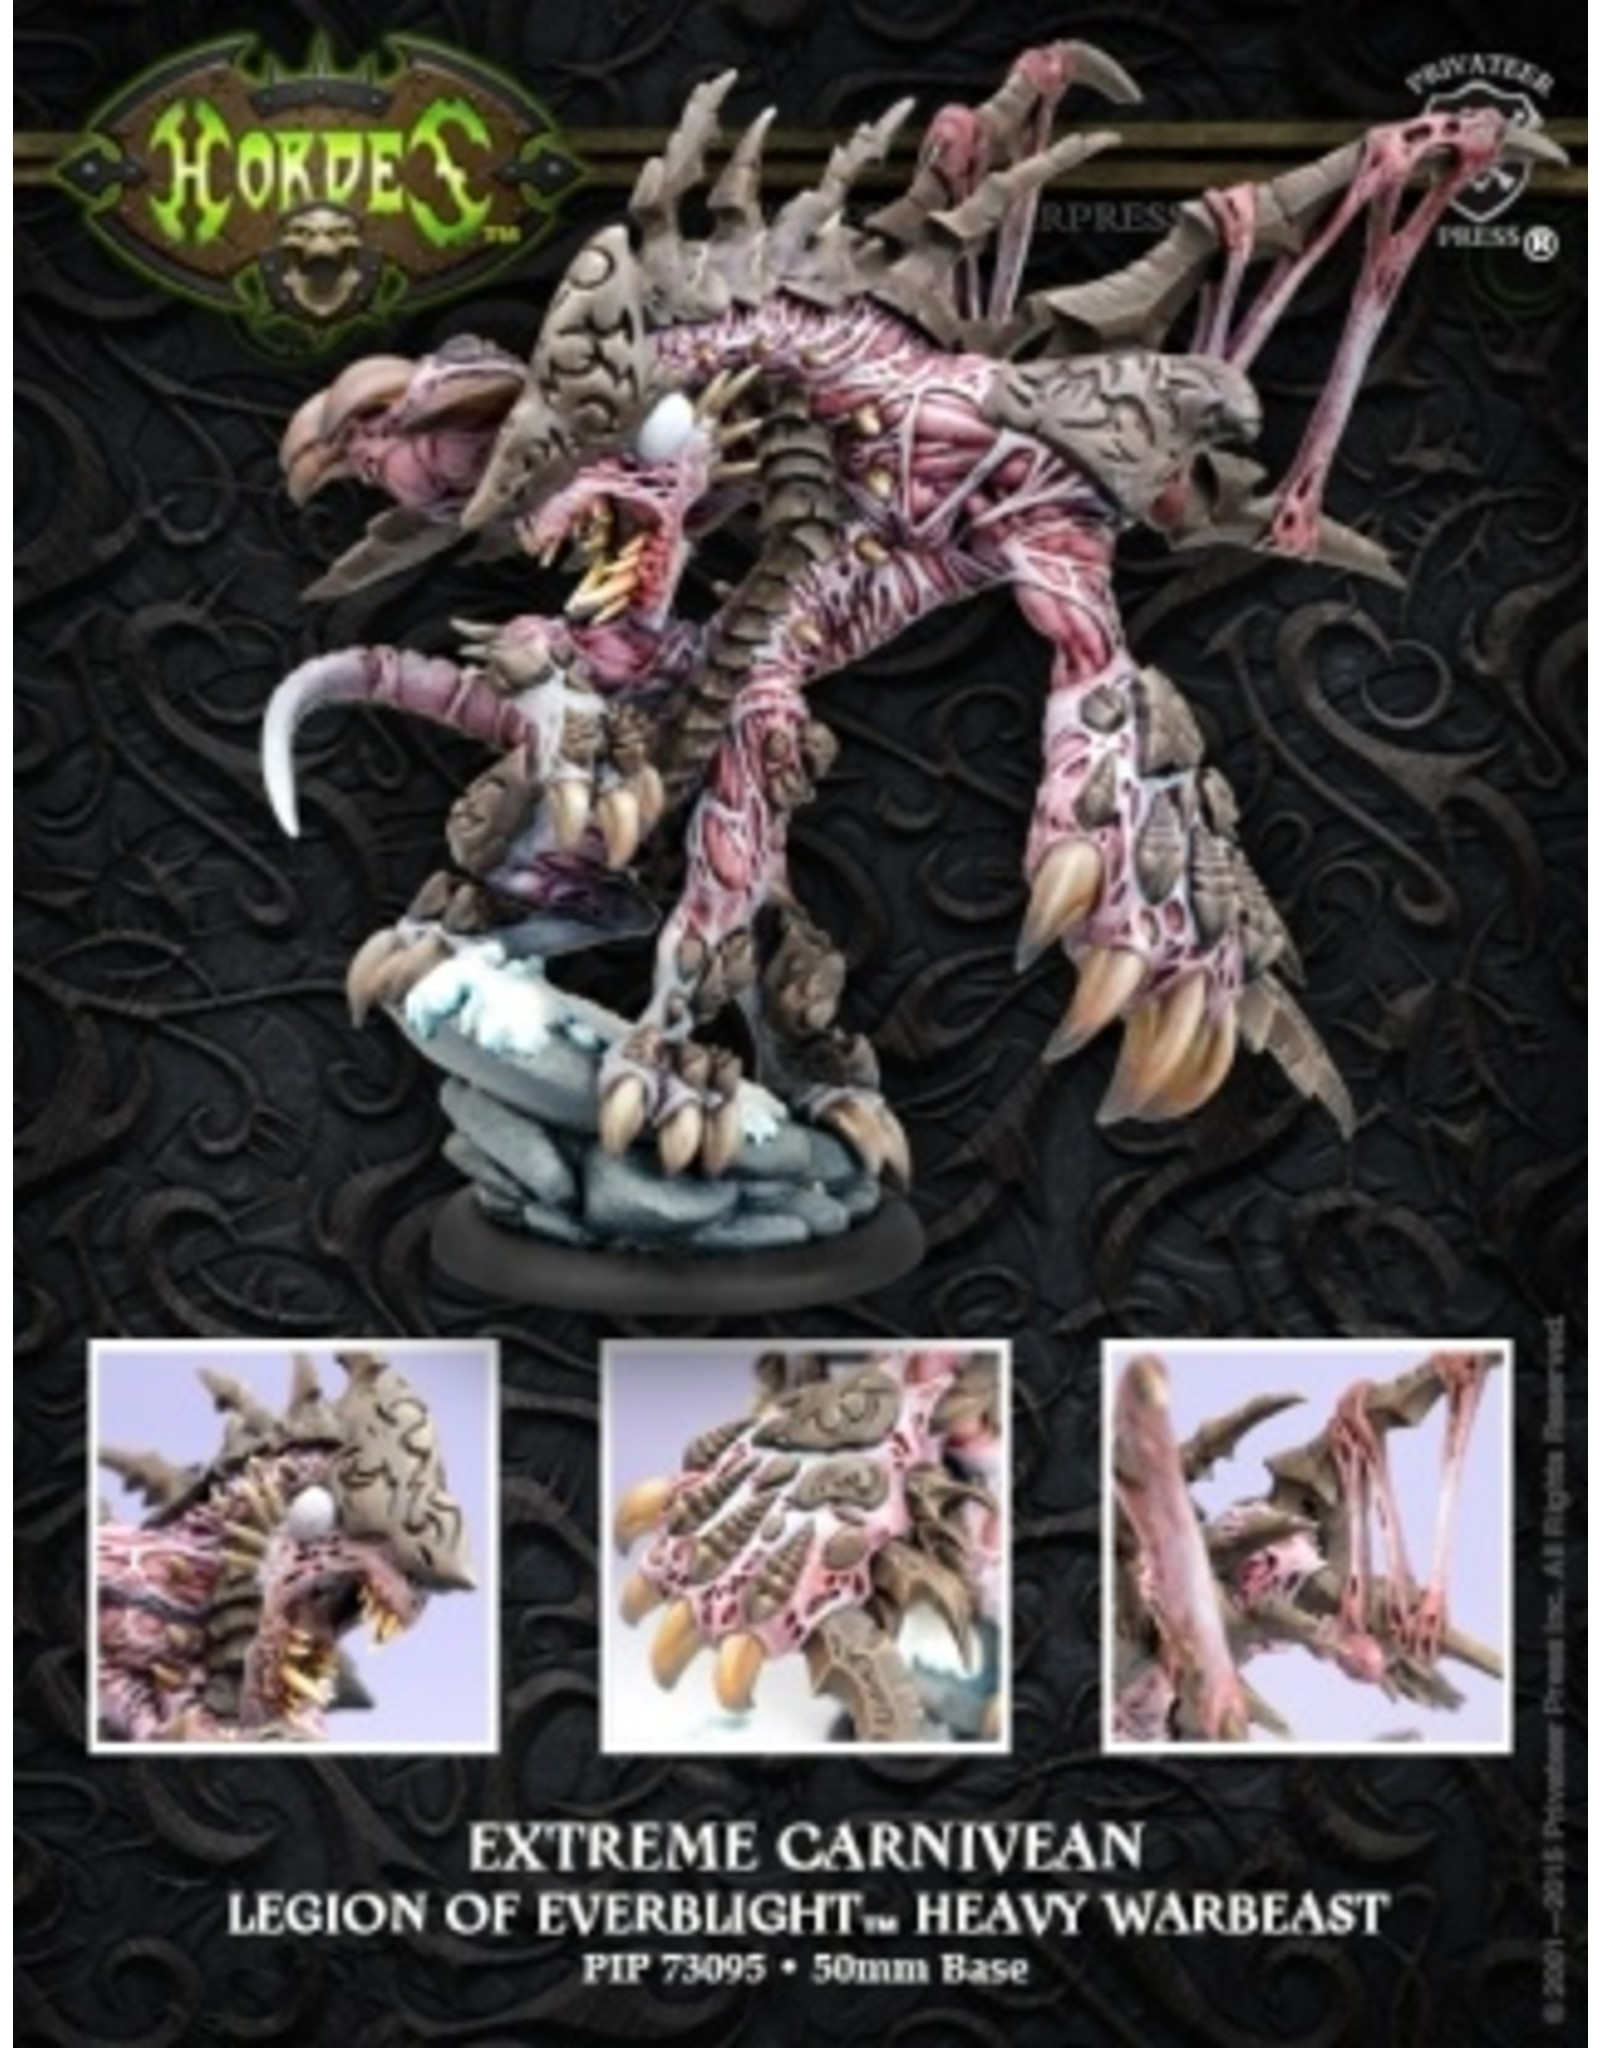 Hordes: Legion of Everblight Extreme Carnivean Heavy Warbeast (Resin and White Metal)